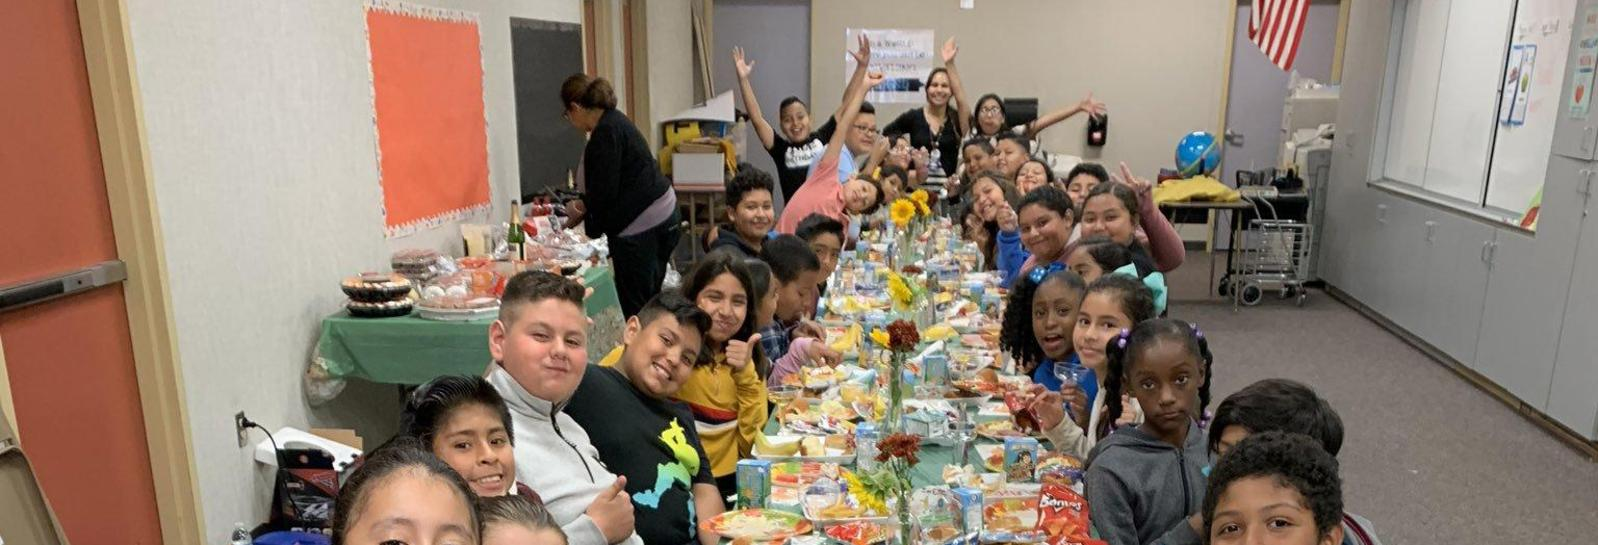 5th grade teacher Mrs. Caganap and her class enjoy a special Thanksgiving feast together!